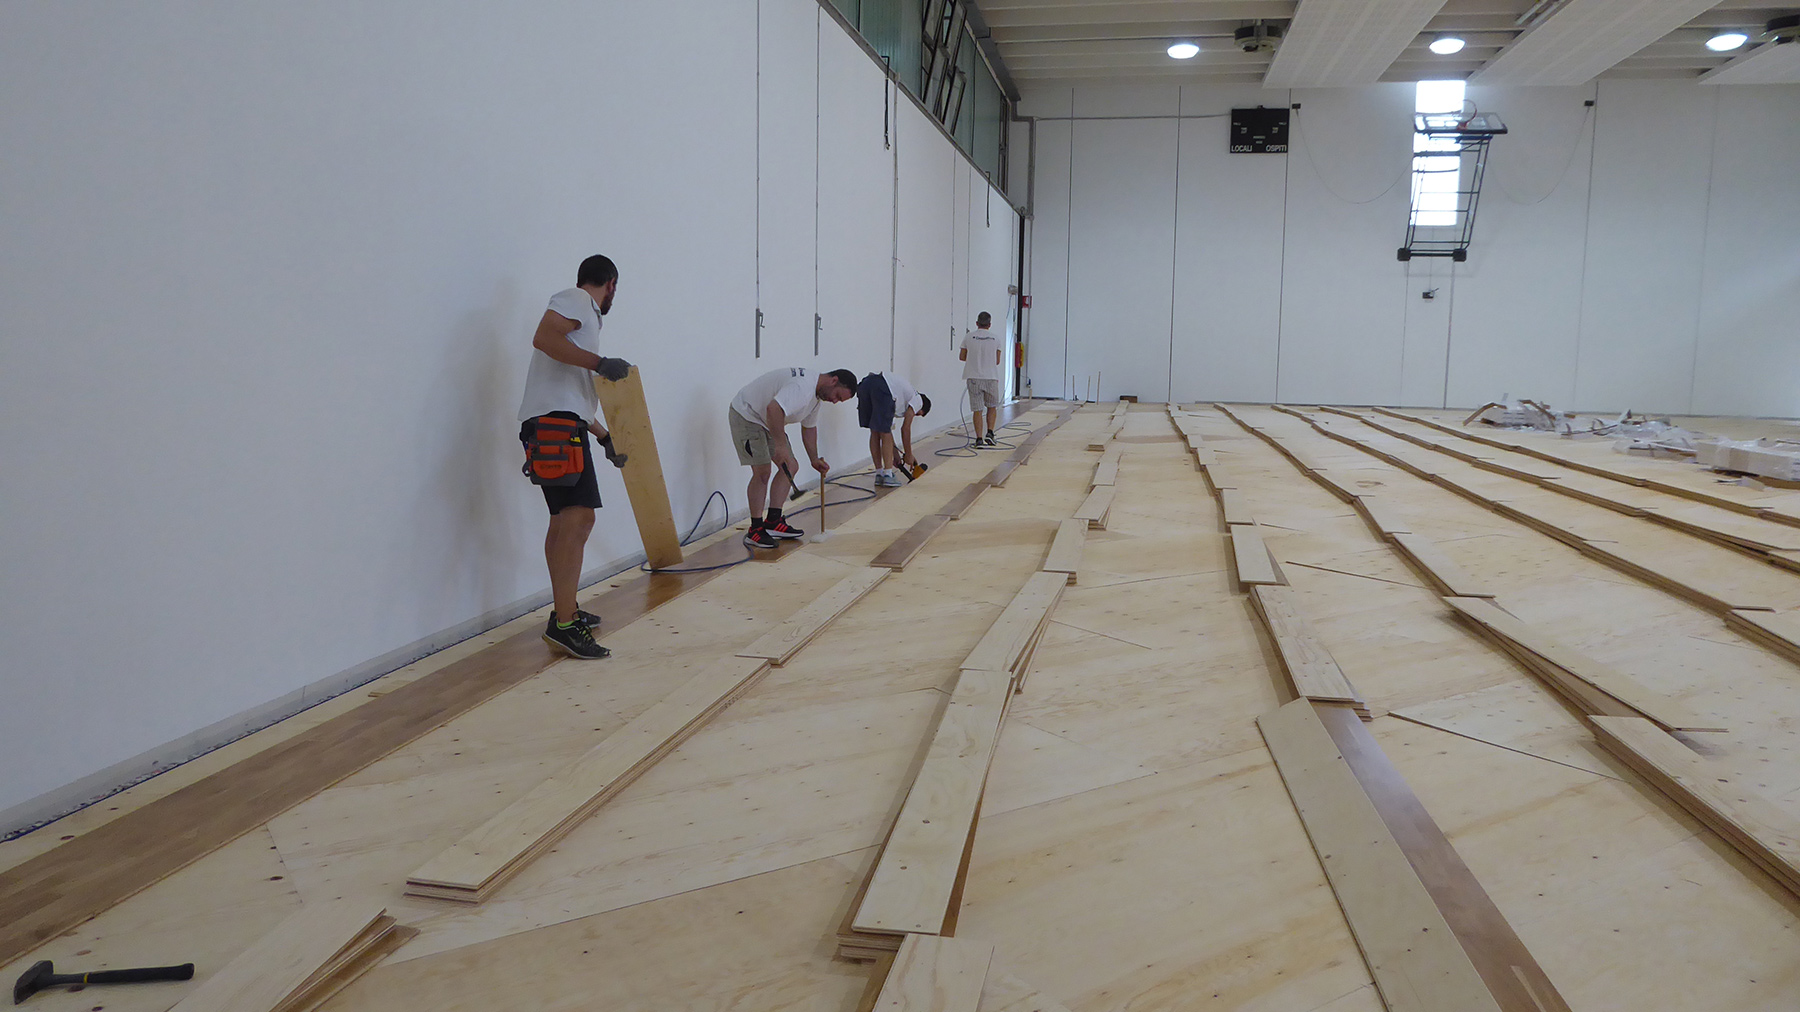 Dalla Riva technicians involved in the installation of parquet